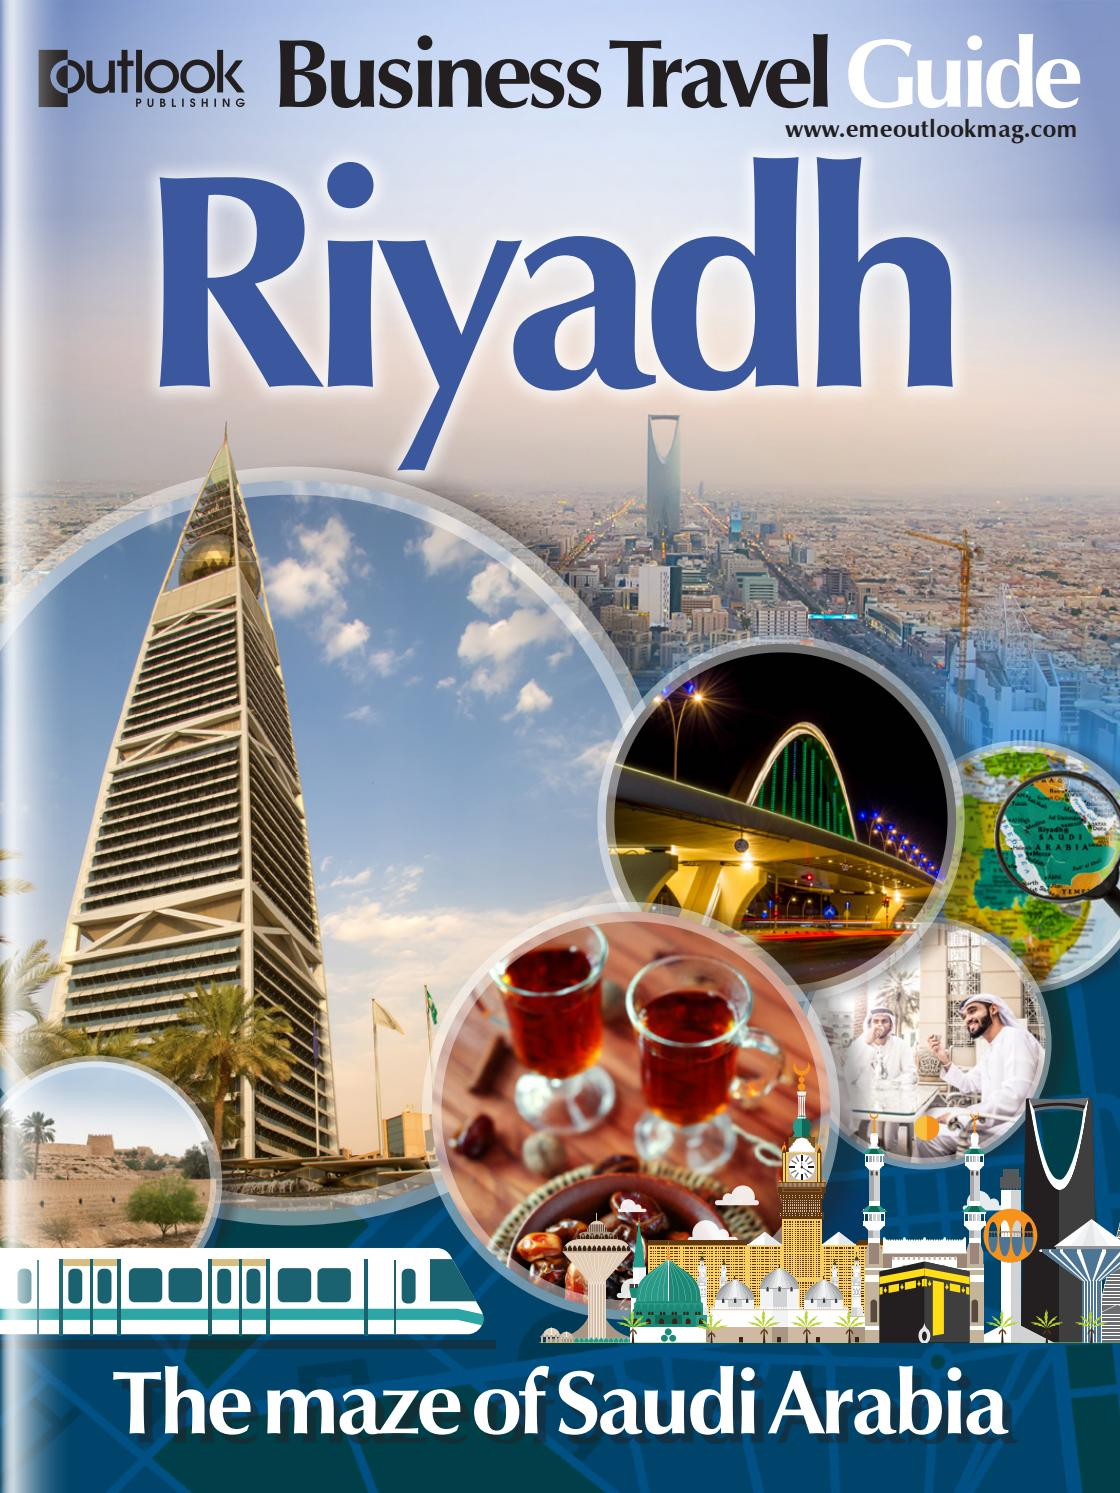 Riyadh Business Travel Guide by Outlook Publishing - Issuu